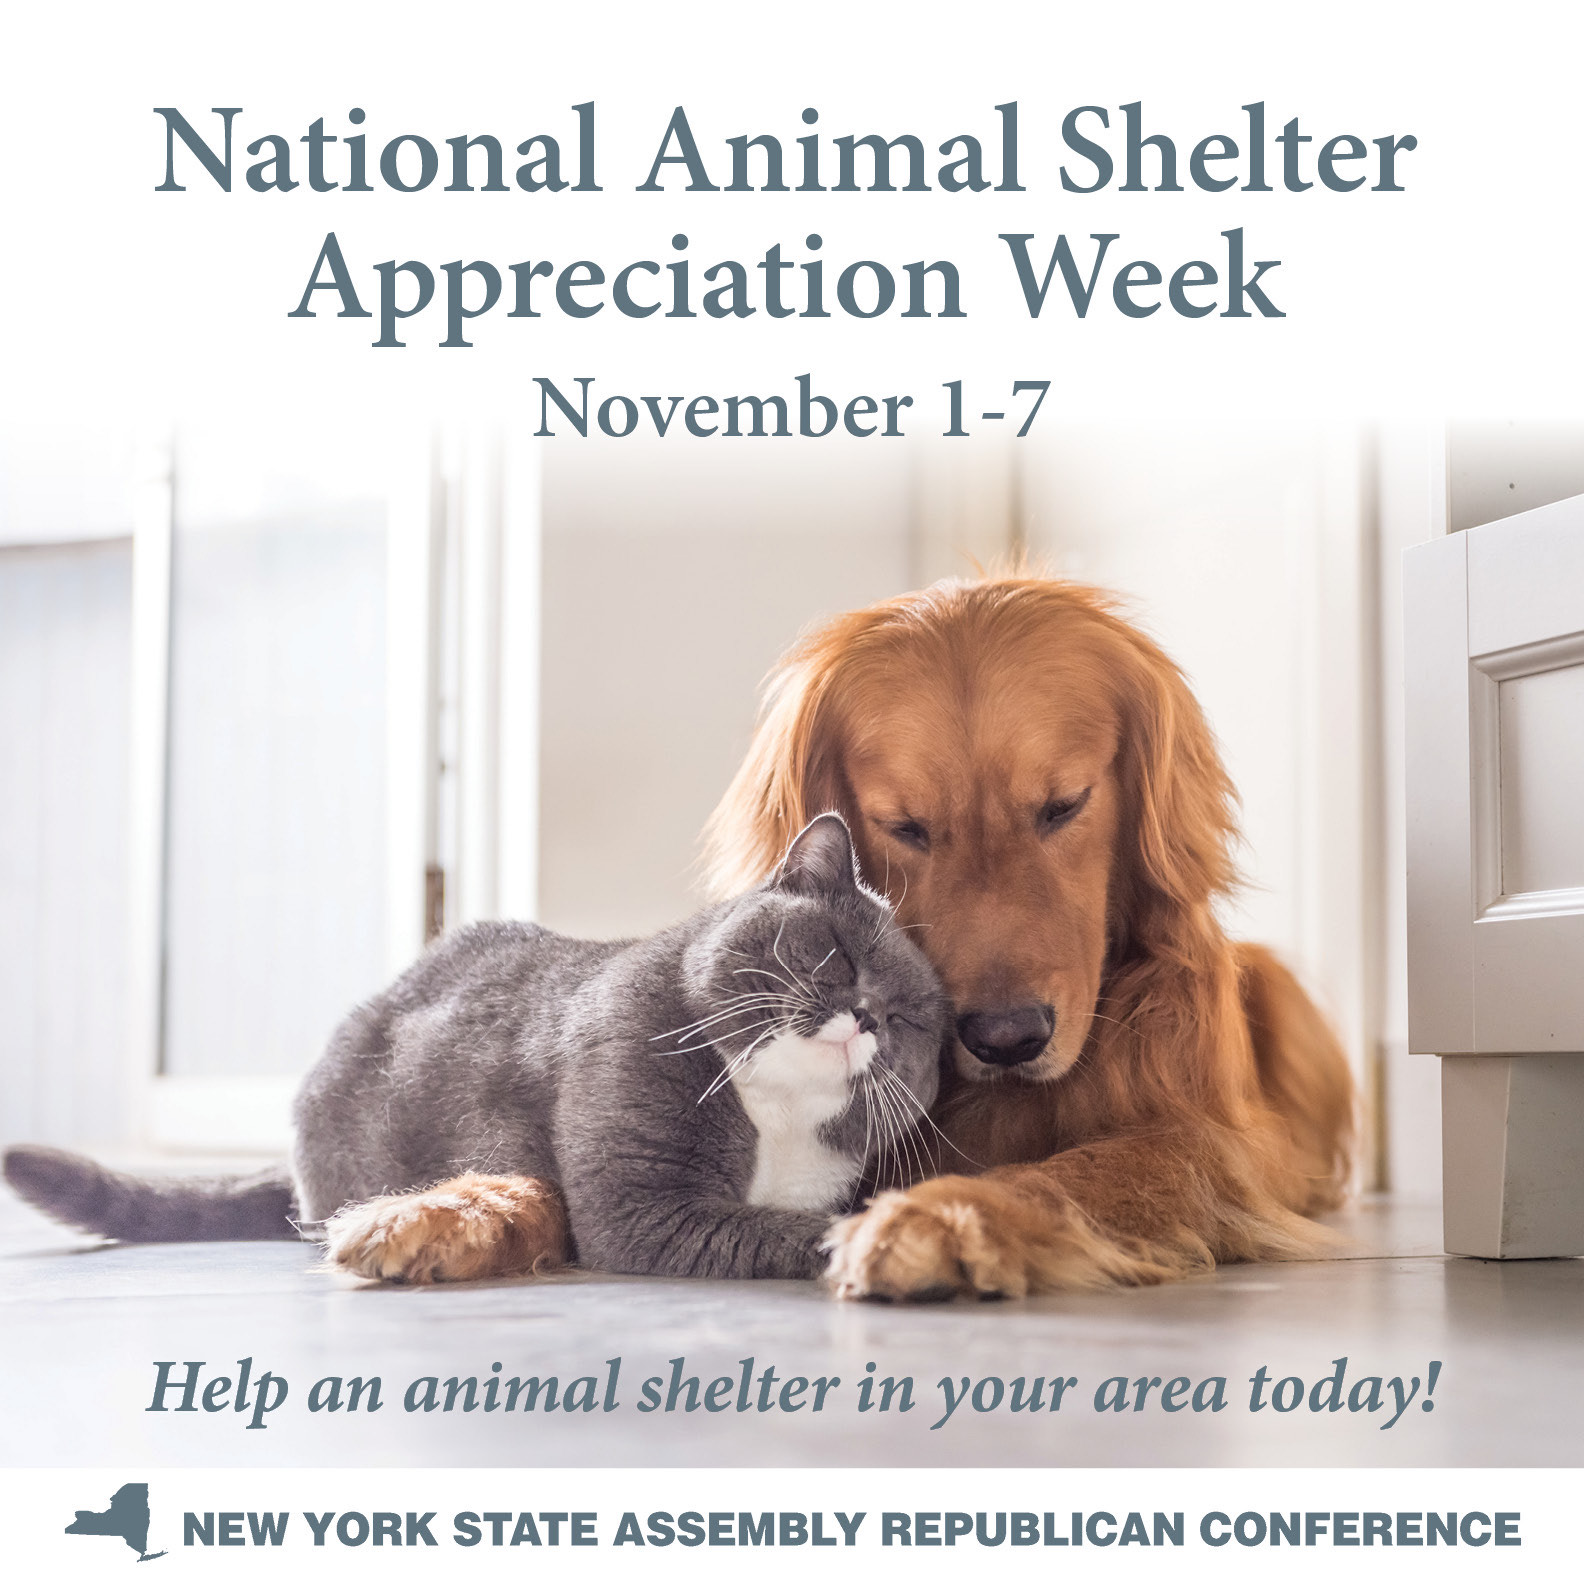 animal_Shelter_Week_11-1-7-2020.jpg